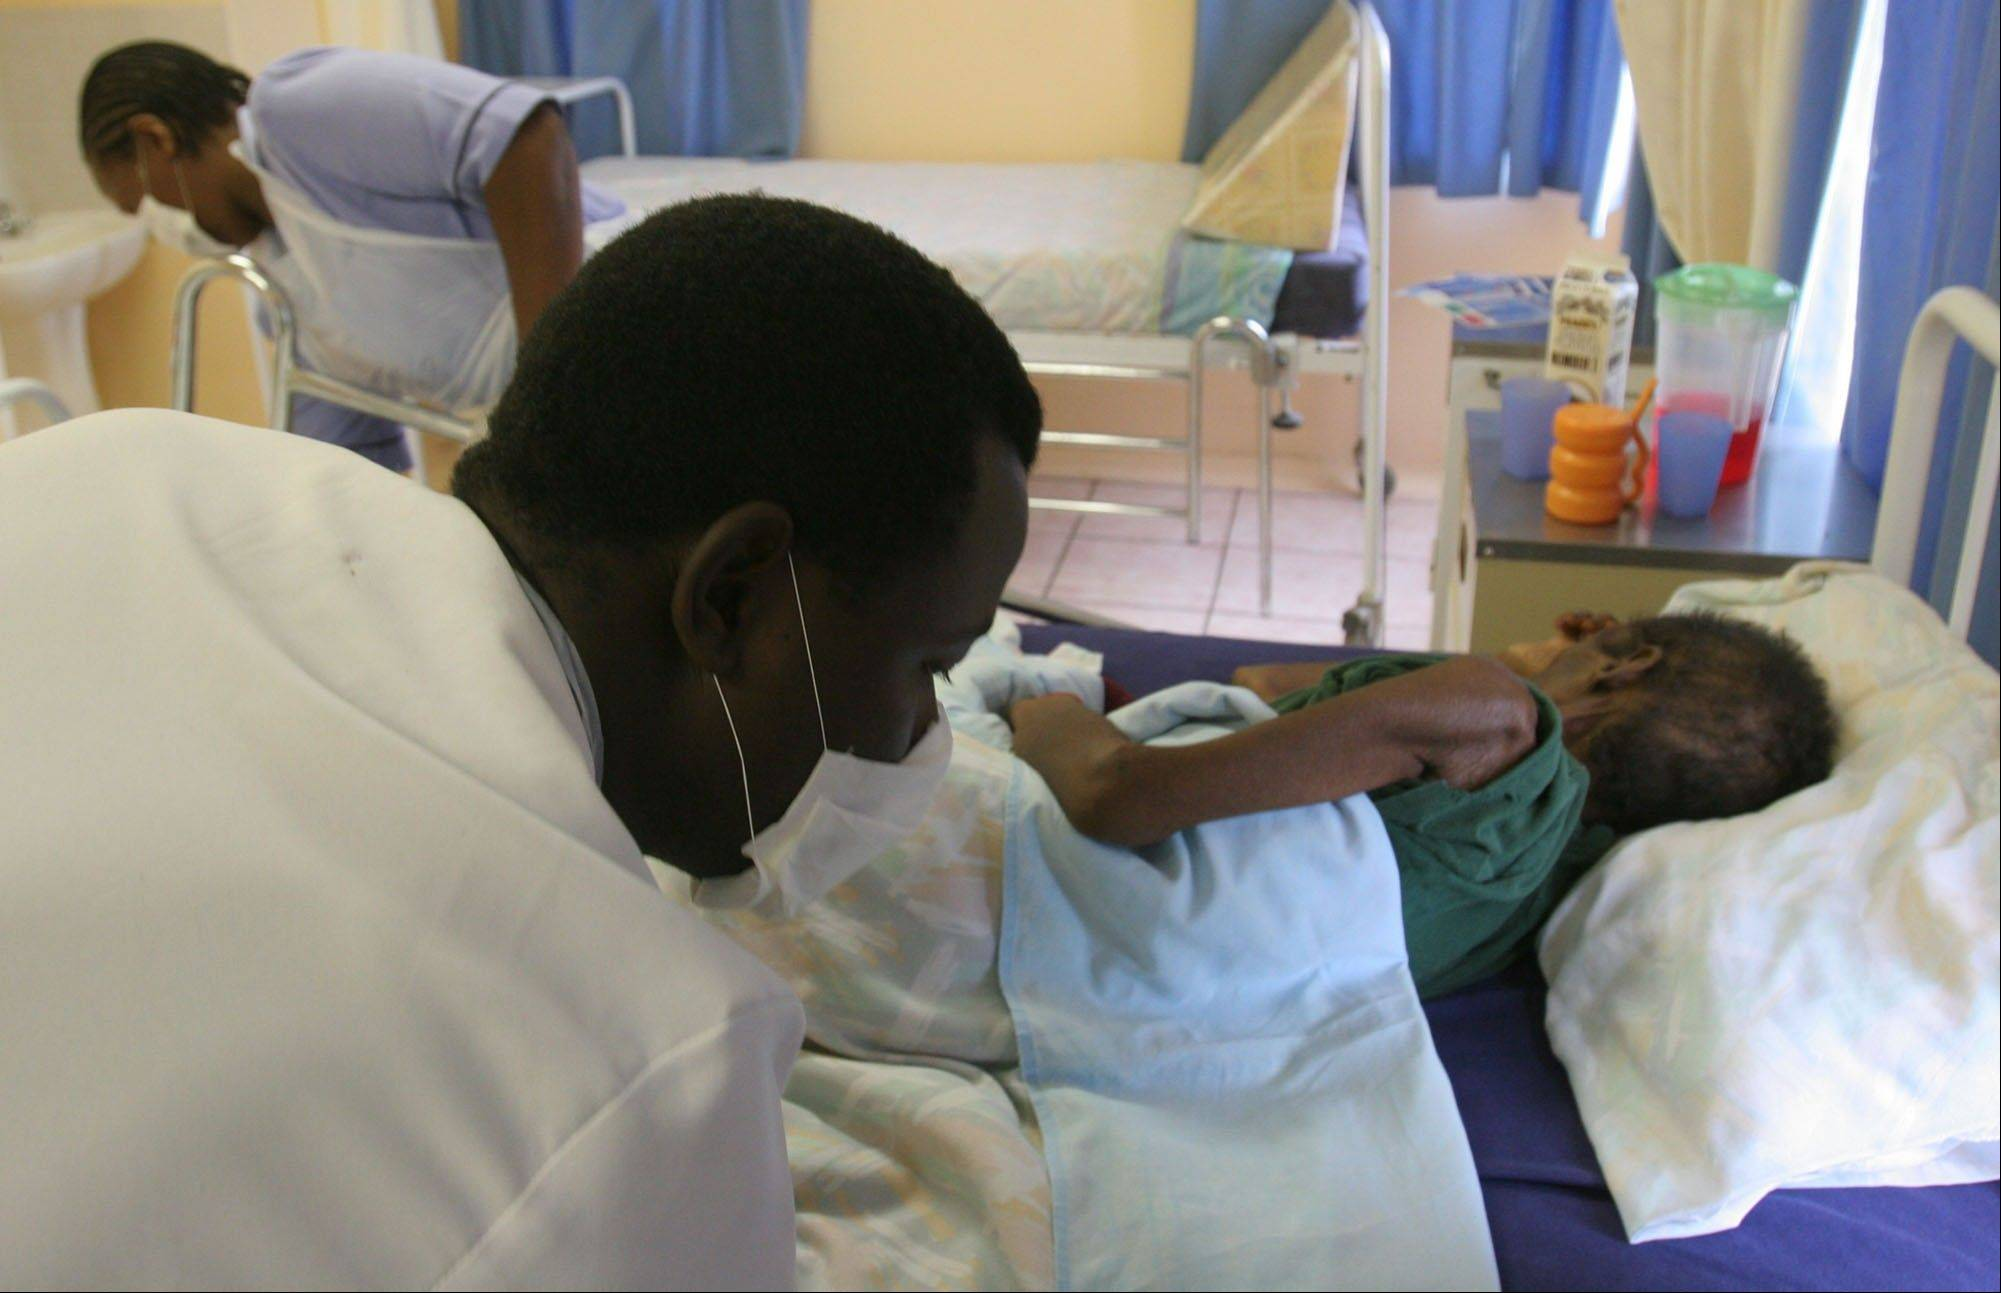 A patient is nursed in the hospice at the AIDS Care Training and Support Initiative at White River Junction, South Africa. The center, partly funded by the President's Emergency Plan for AIDS Relief supports the development of a community-based palliative care unit, which provides care, education and training for staff and community caregivers, volunteer counseling and testing facilities.